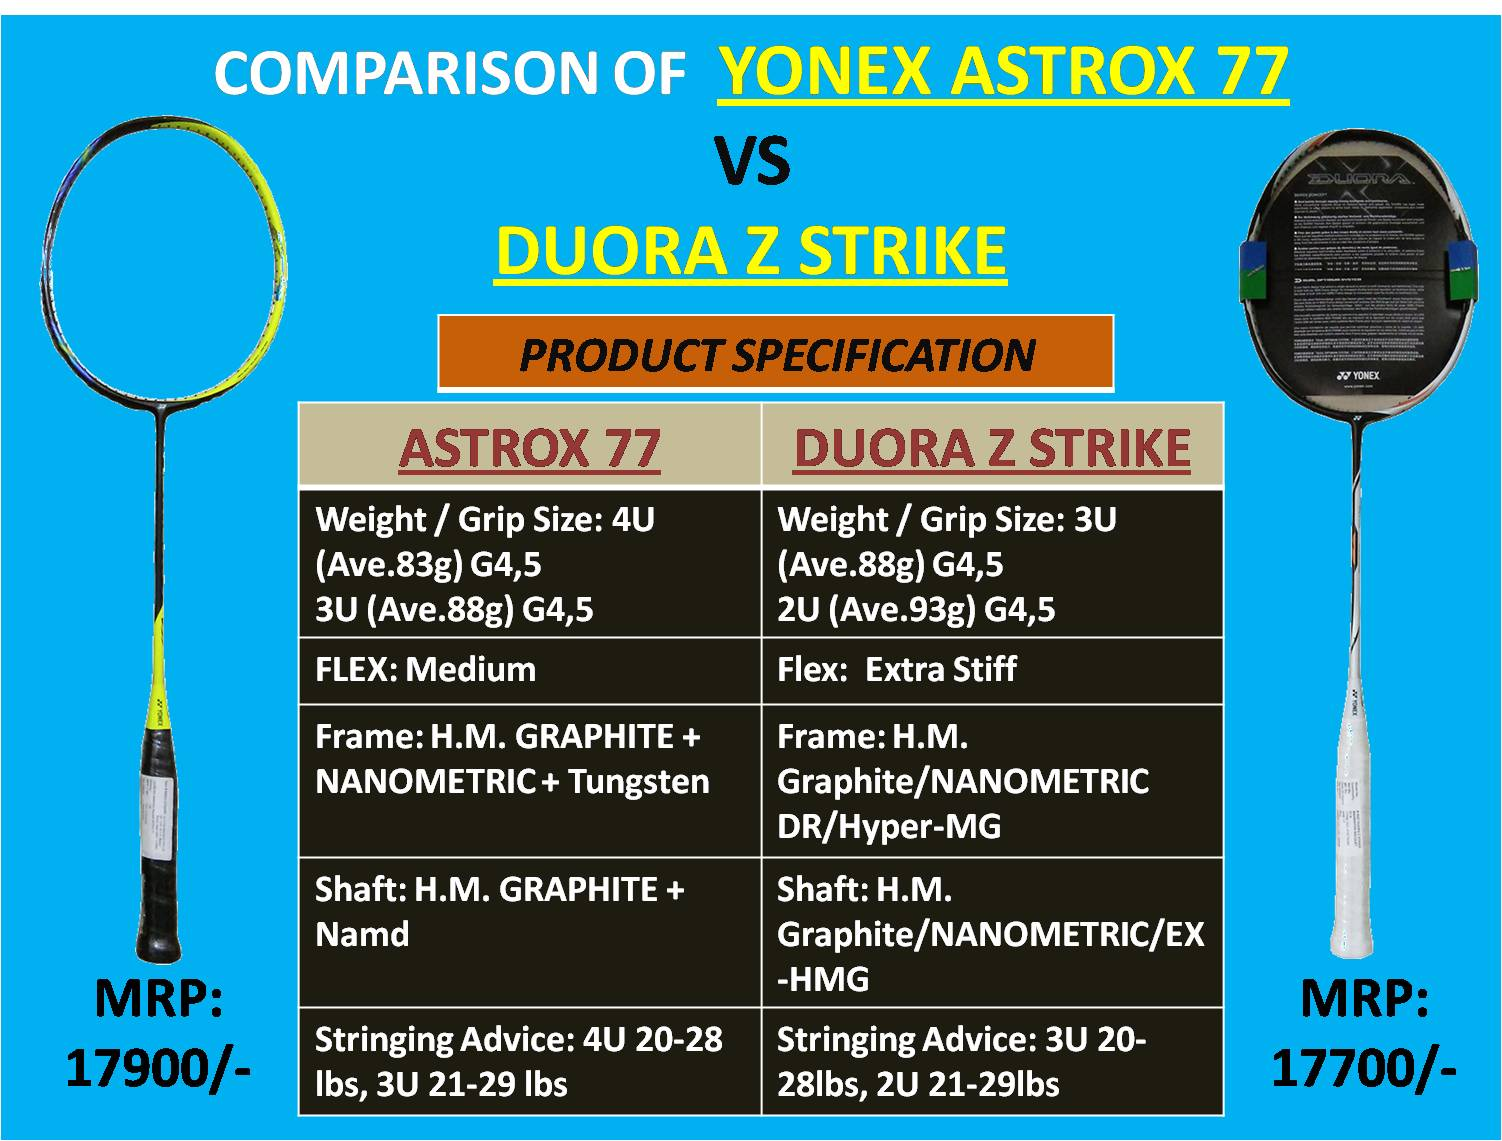 COMPARISON OF YONEX ASTROX 77 VS DUORA Z STRIKE_2